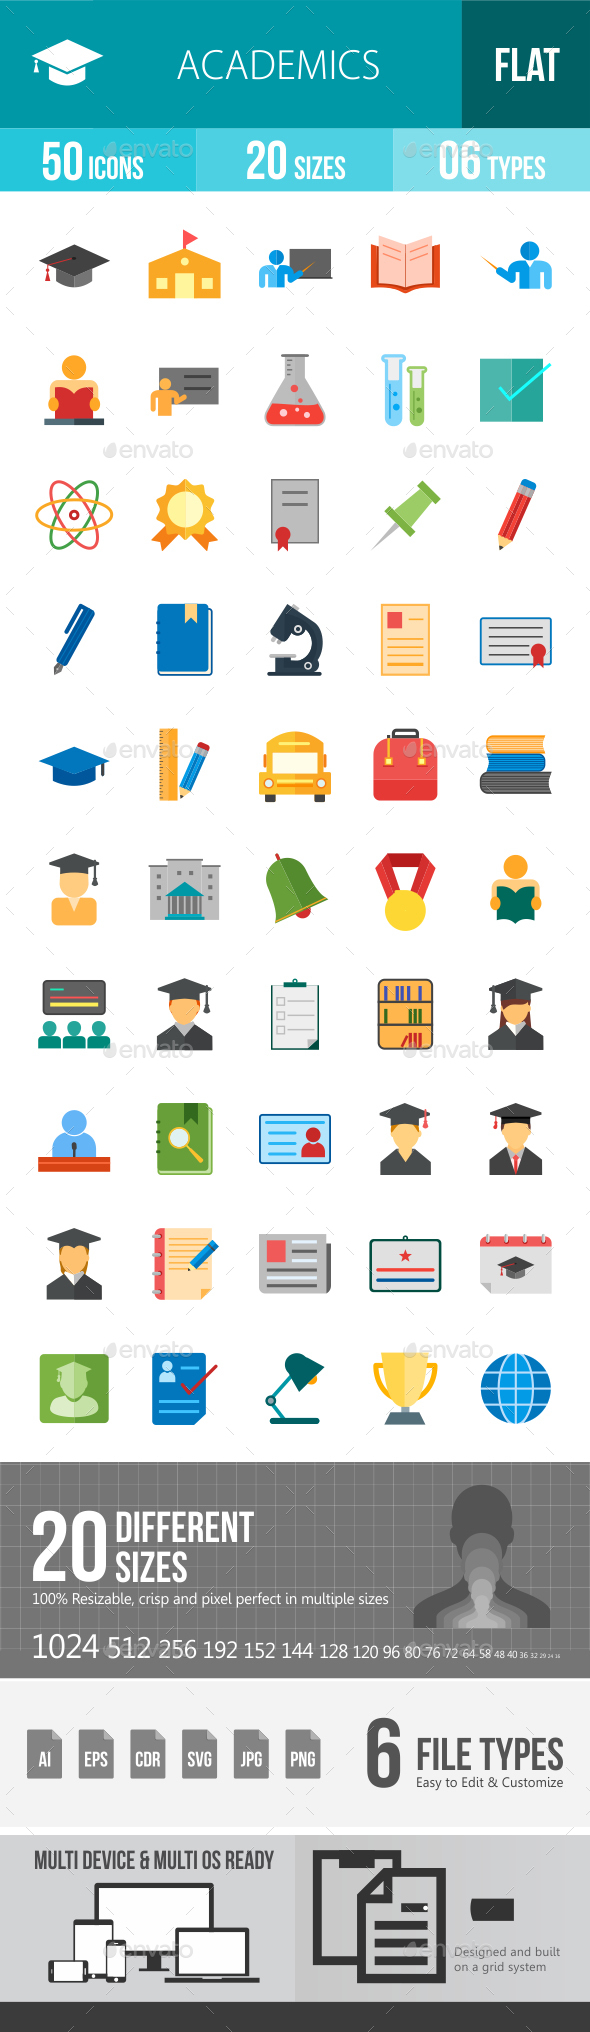 Academics Flat Multicolor Icons - Icons